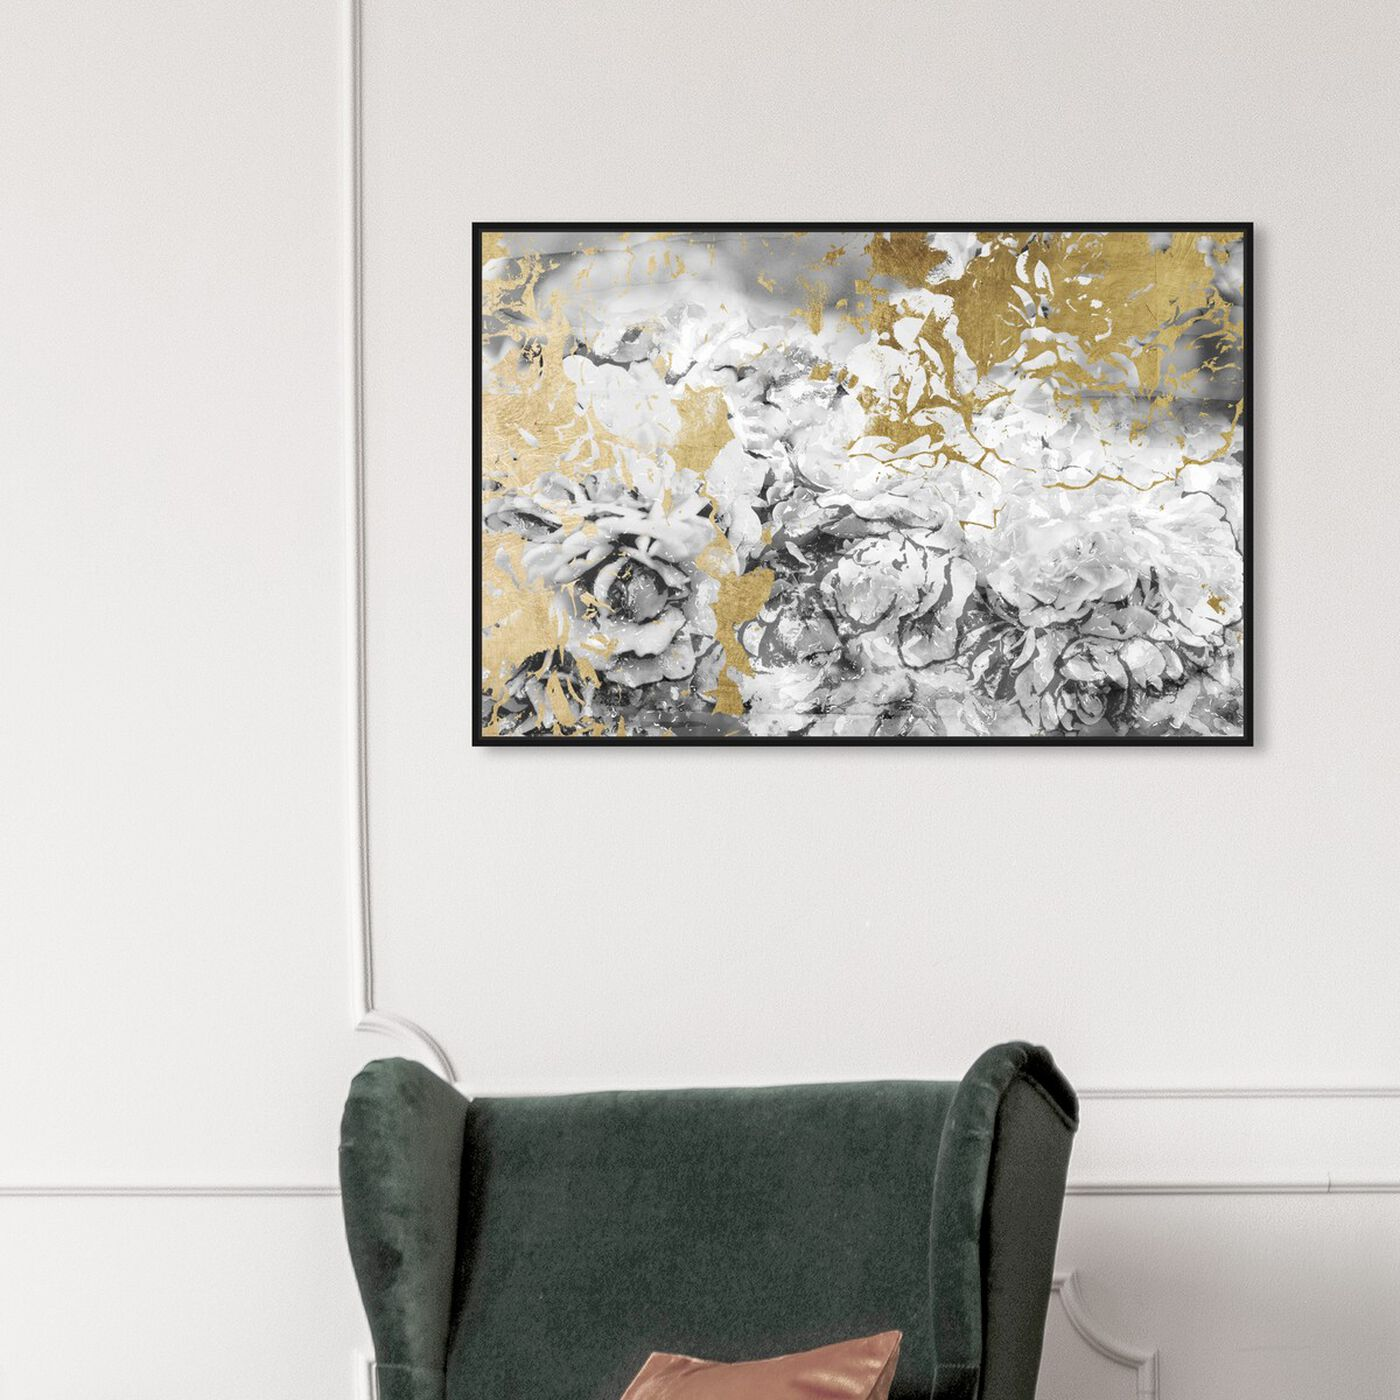 Hanging view of Silver and Gold Camellias featuring abstract and flowers art.